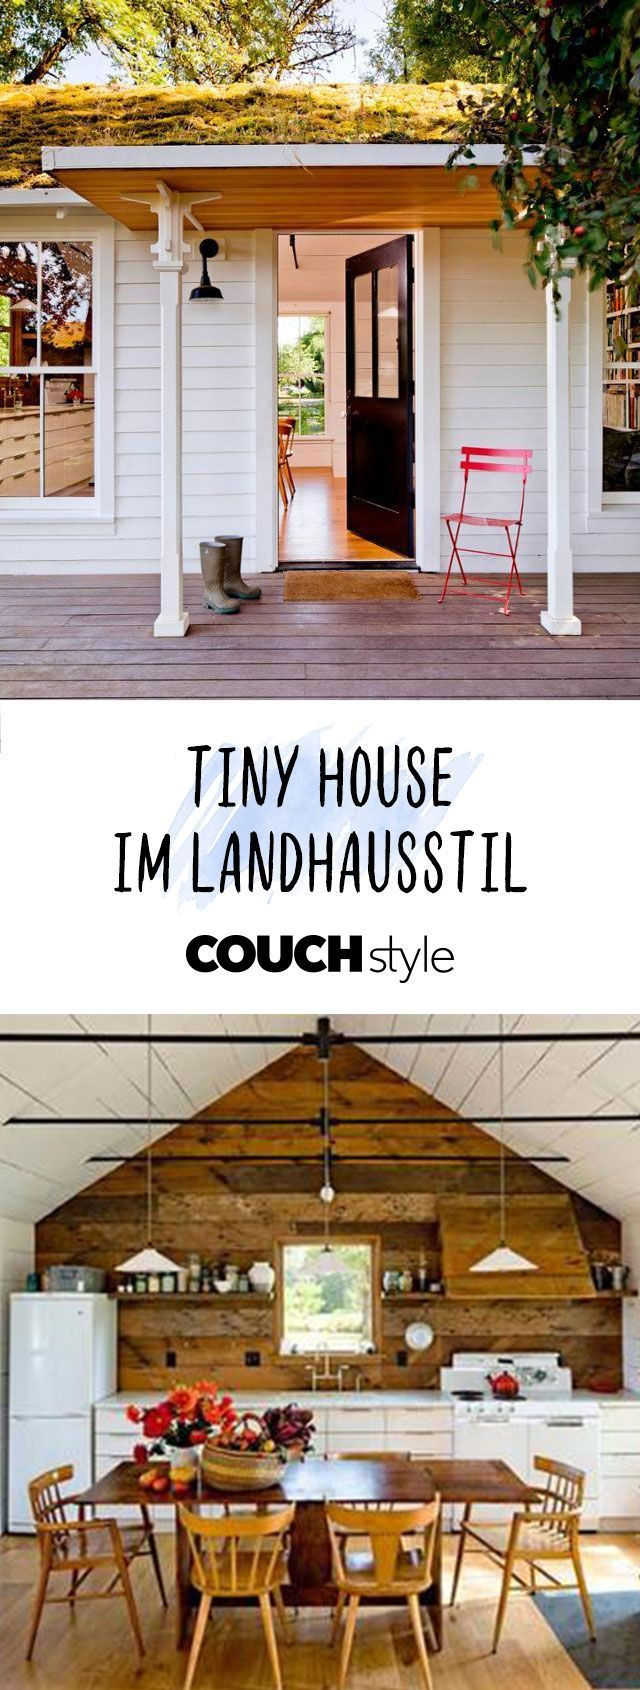 20 best Tiny Houses & Baumhäuser images on Pinterest | Little houses ...